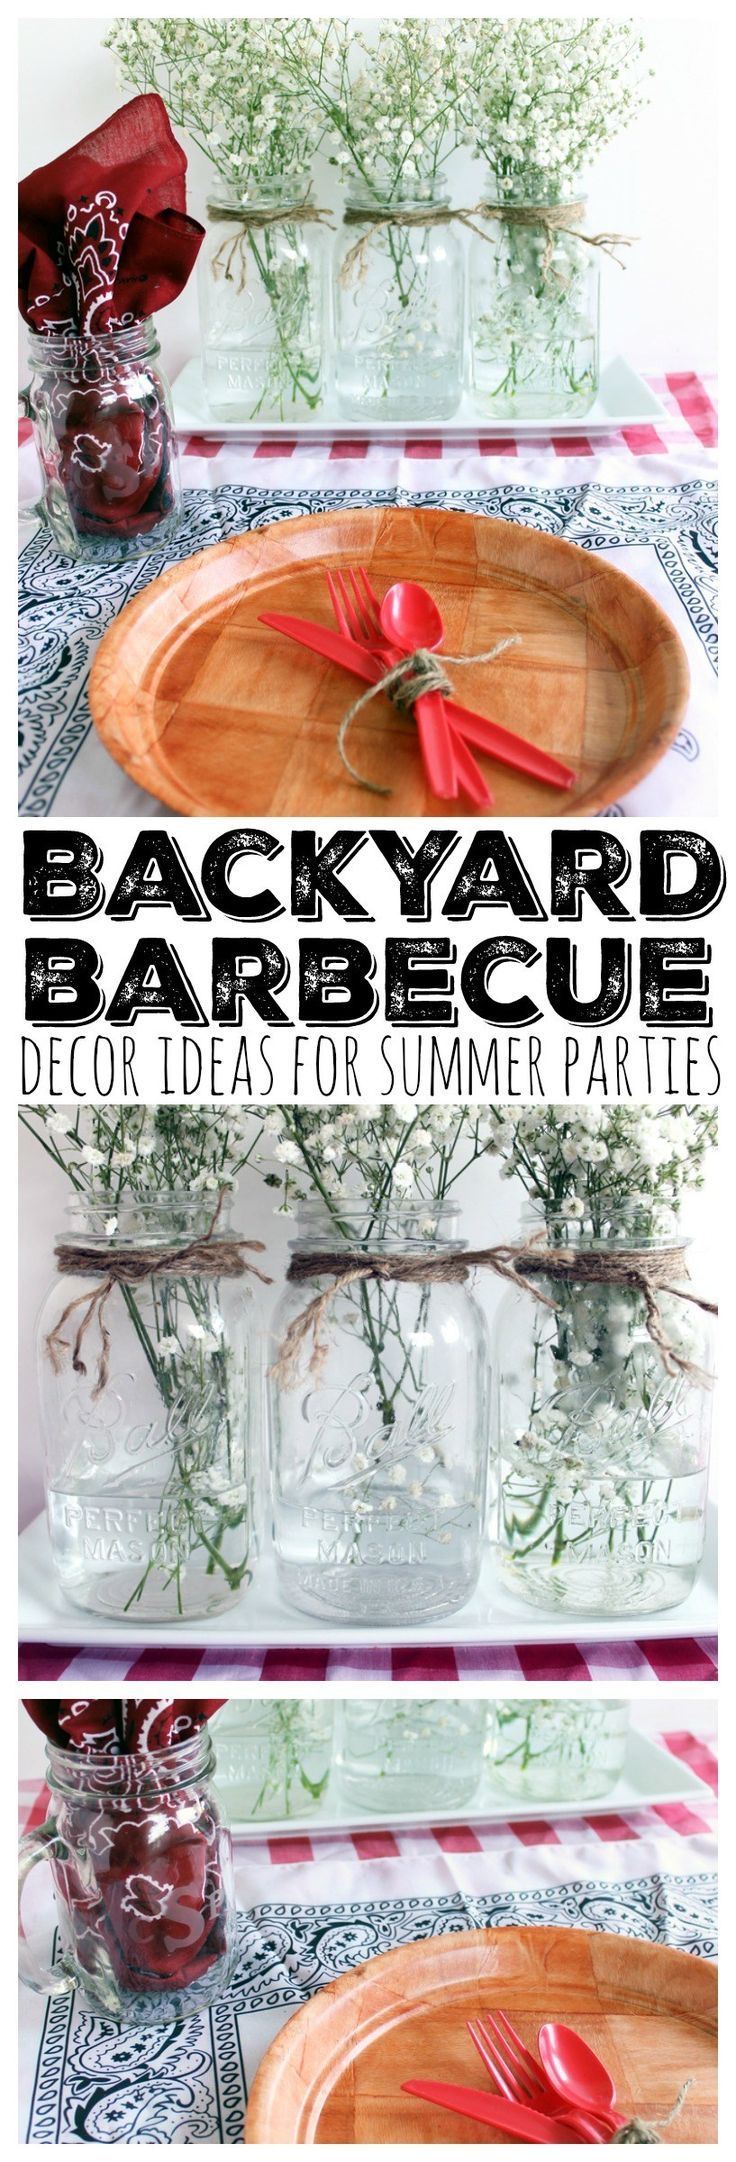 100 best images about summer bbq fun and backyard entertaining on